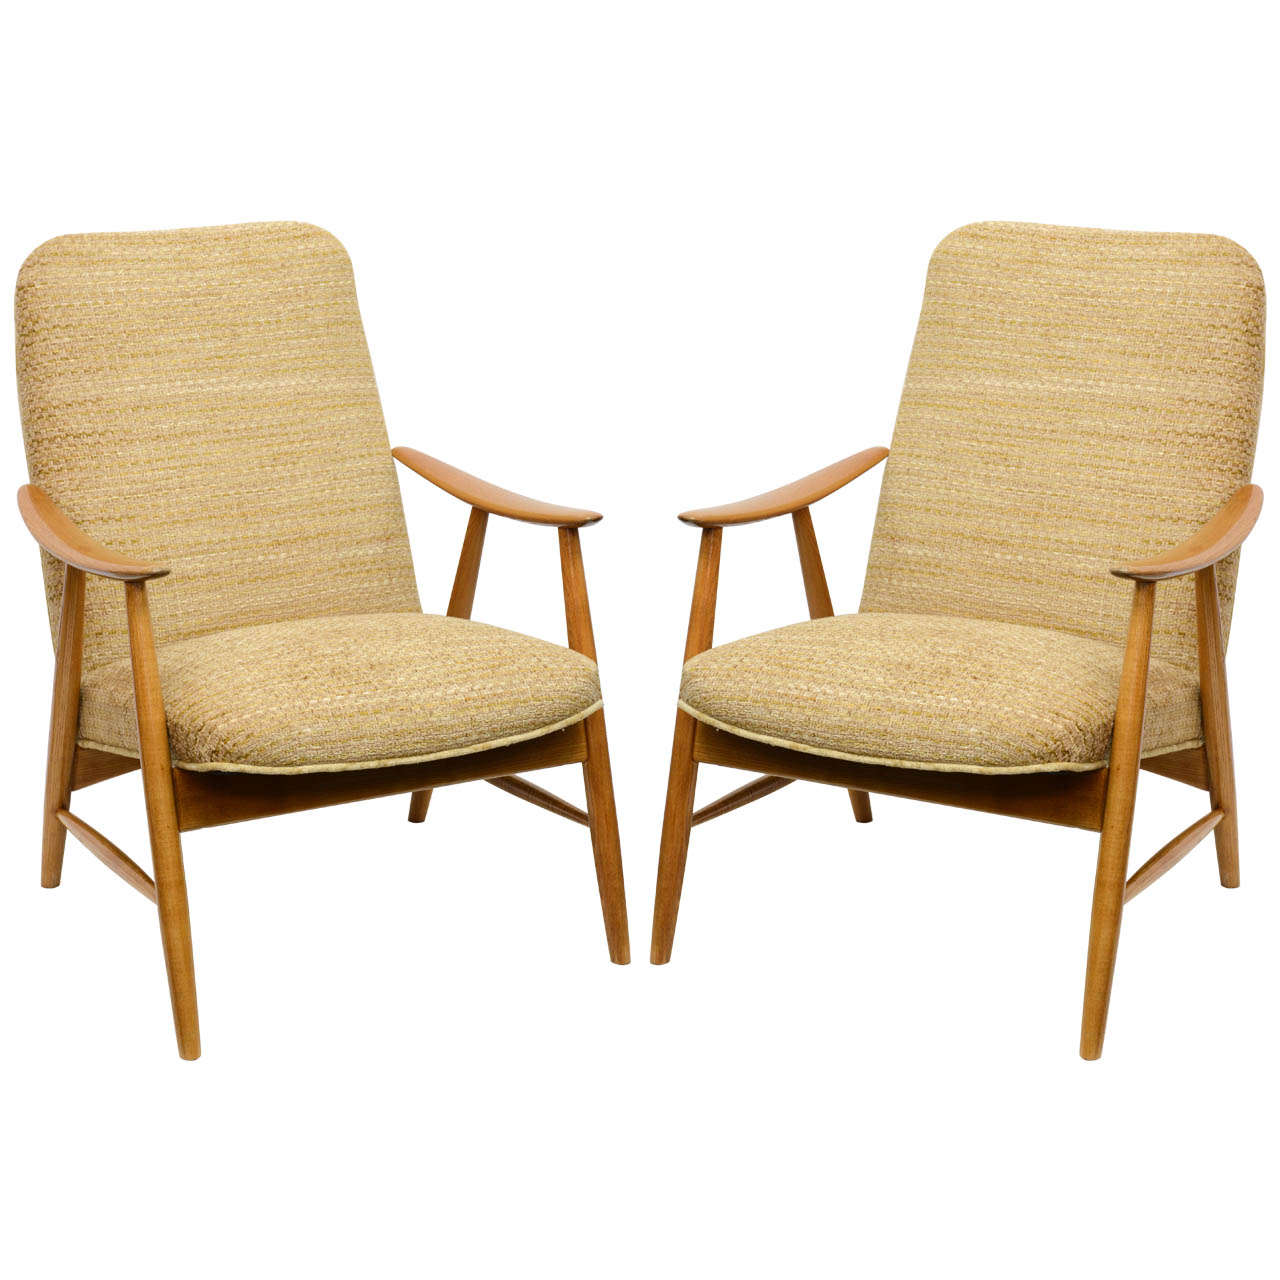 Pair of mid century modern armchairs in a style of juhl for Mid century modern armchairs